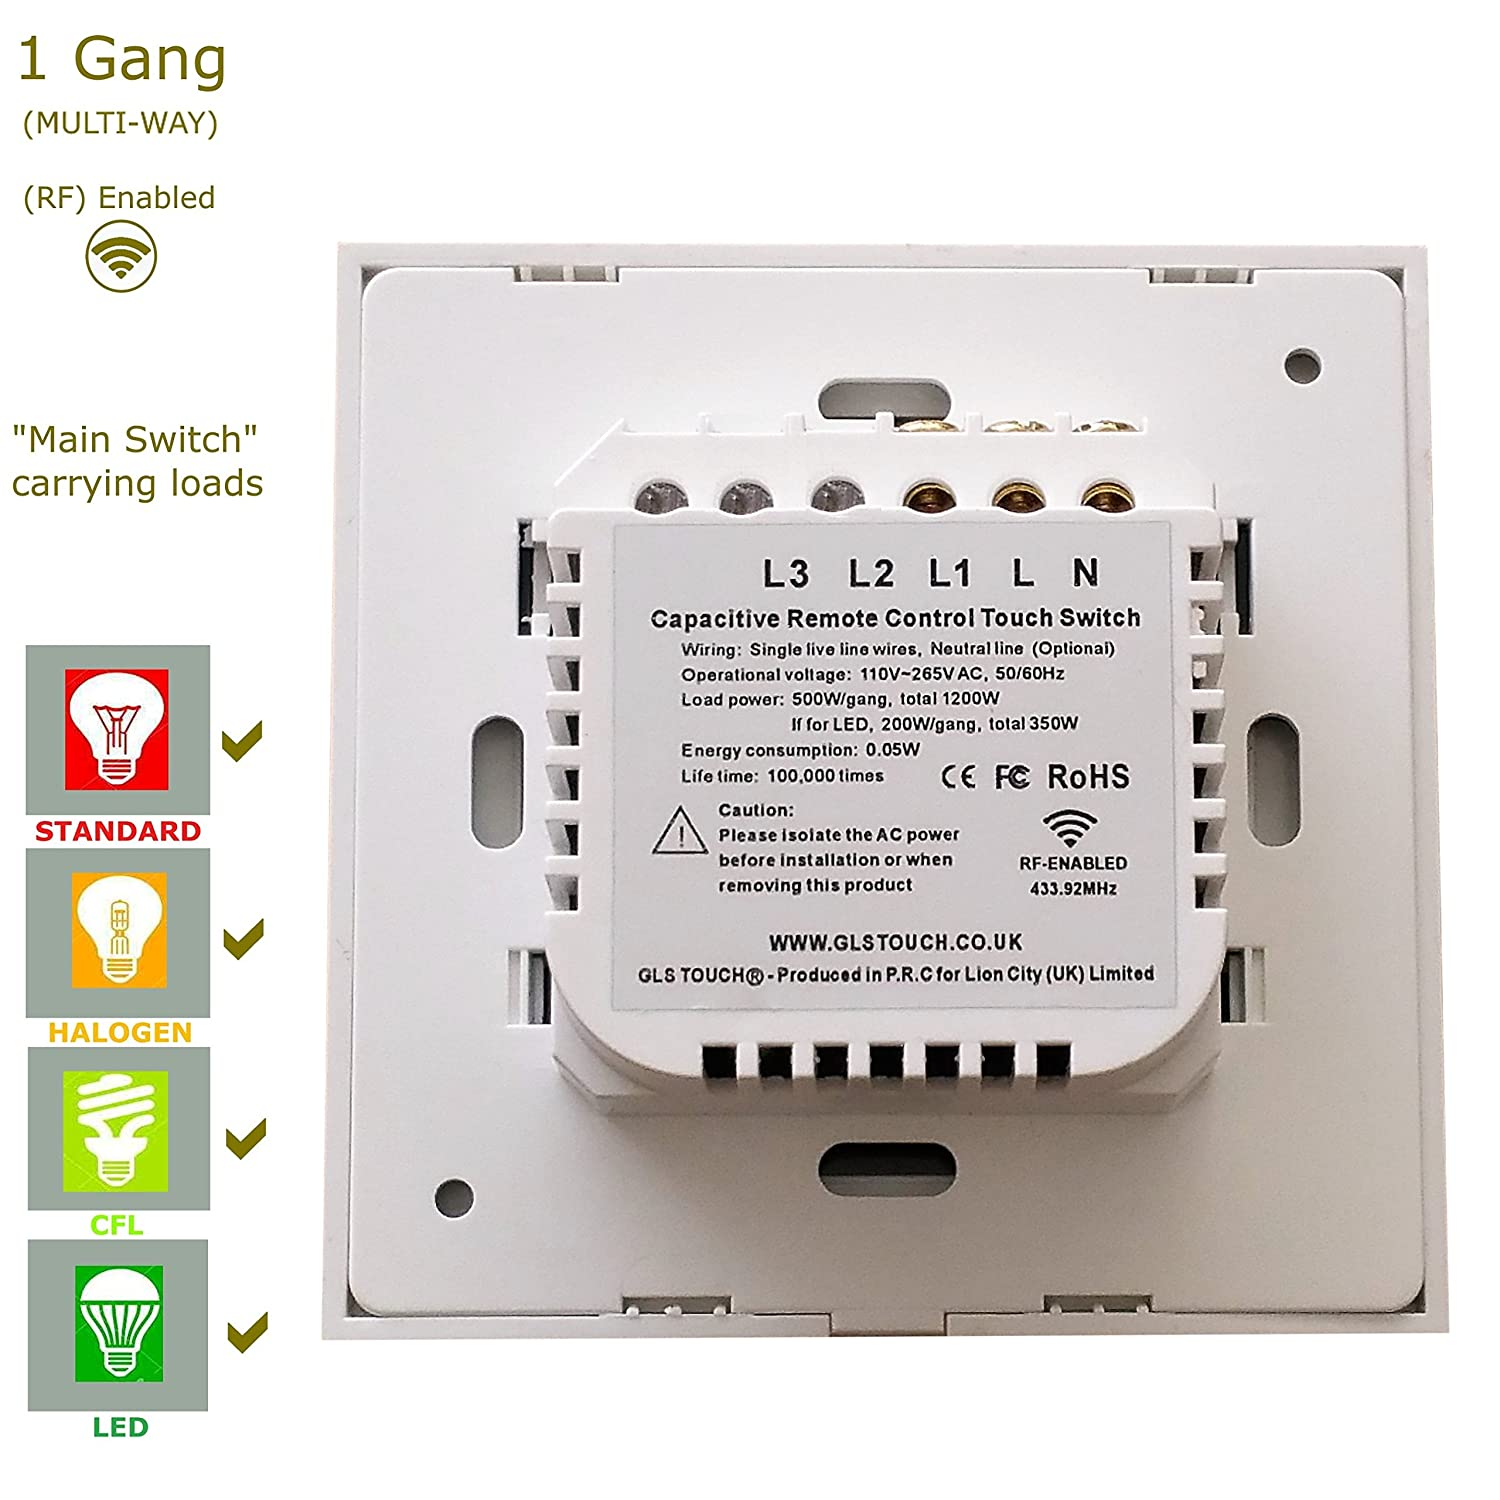 Glstouch Smart Rf Touch Light Switch White Glass Panel 1 Gang Wiring Single Way 2 Multi Control Via Radio Frequency 43392mhz Pairing